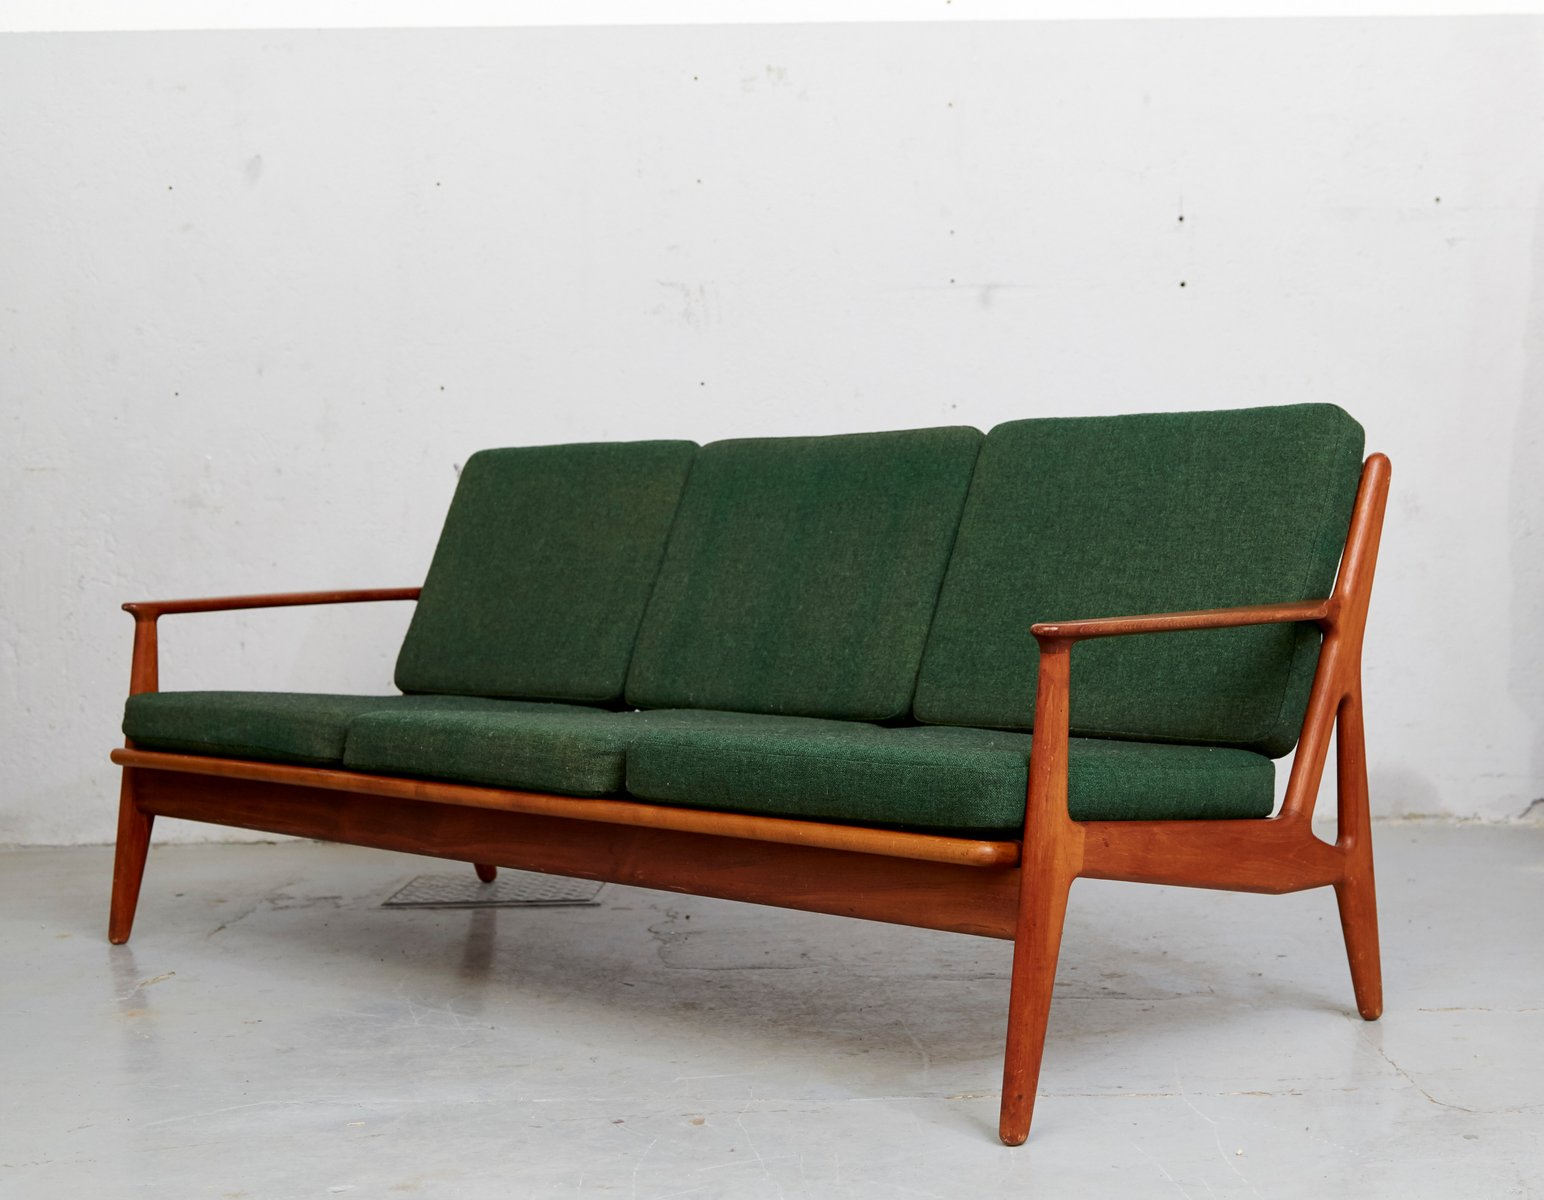 Teak Sofa 28 Images Danish Modern Teak Sofa Bed At 1stdibs Teak Wood Sofa Designs Images